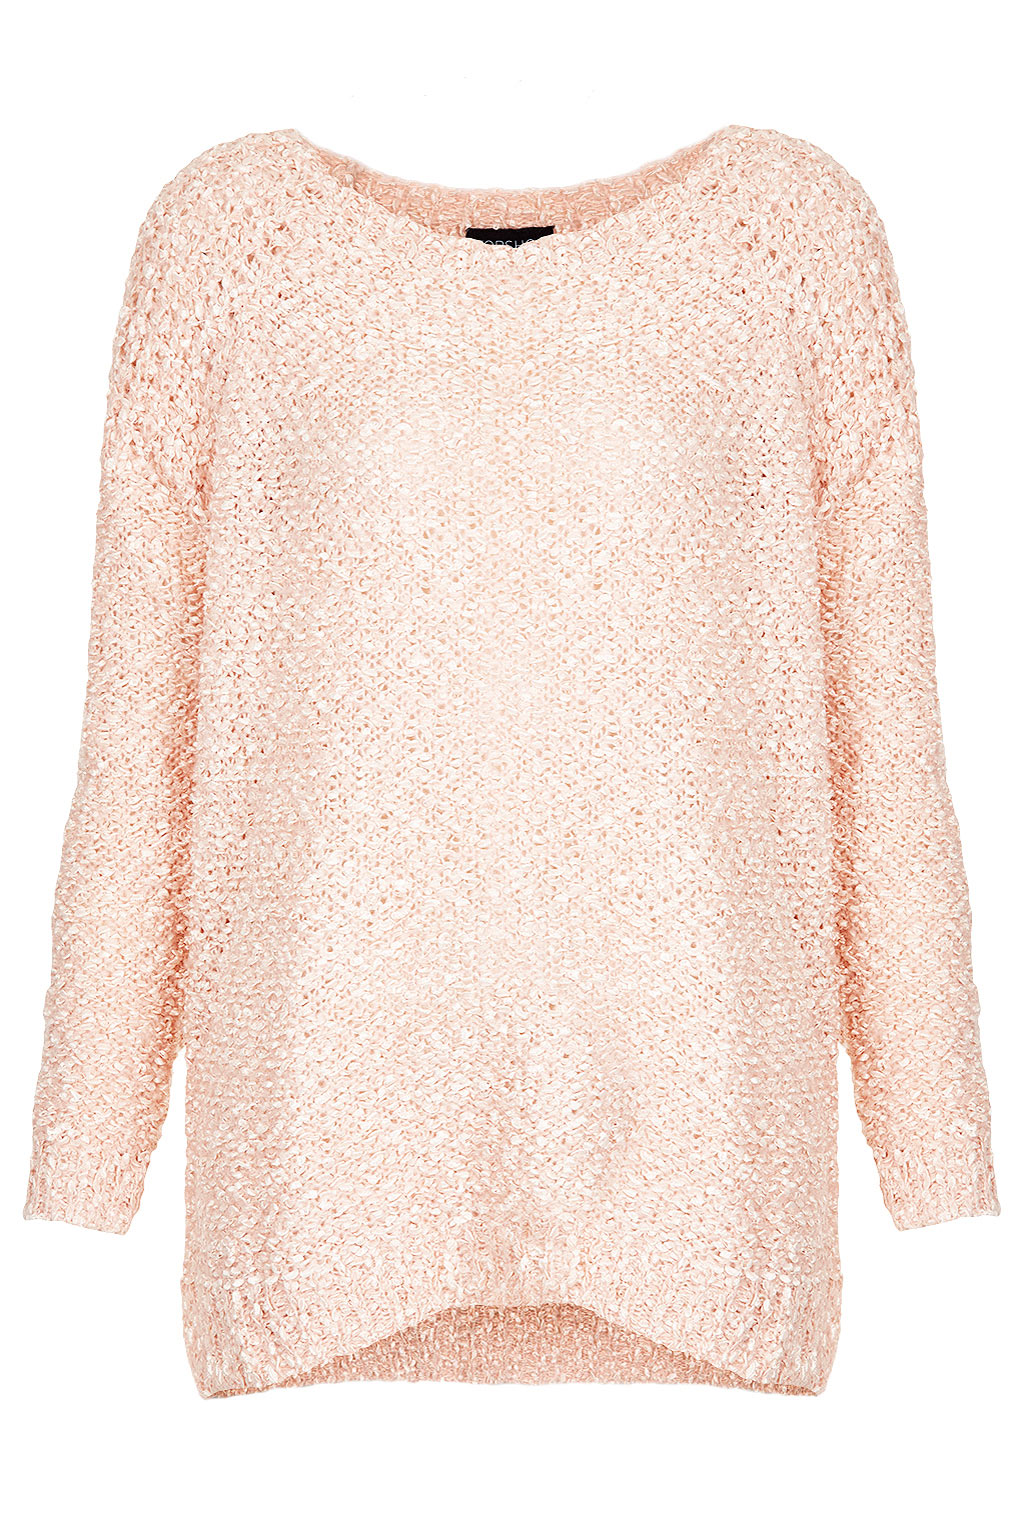 Shop from a range of jumpers, cardigans and sweaters available from ASOS. your browser is not supported Stradivarius ribbed light weight knit top. £ ASOS DESIGN knitted polo top. £ New Look Petite Knitted Stripe Crew Neck Top Oasis pointelle knitted 3/4 sleeve top in pink. £ ASOS DESIGN ribbed tank with gold button.